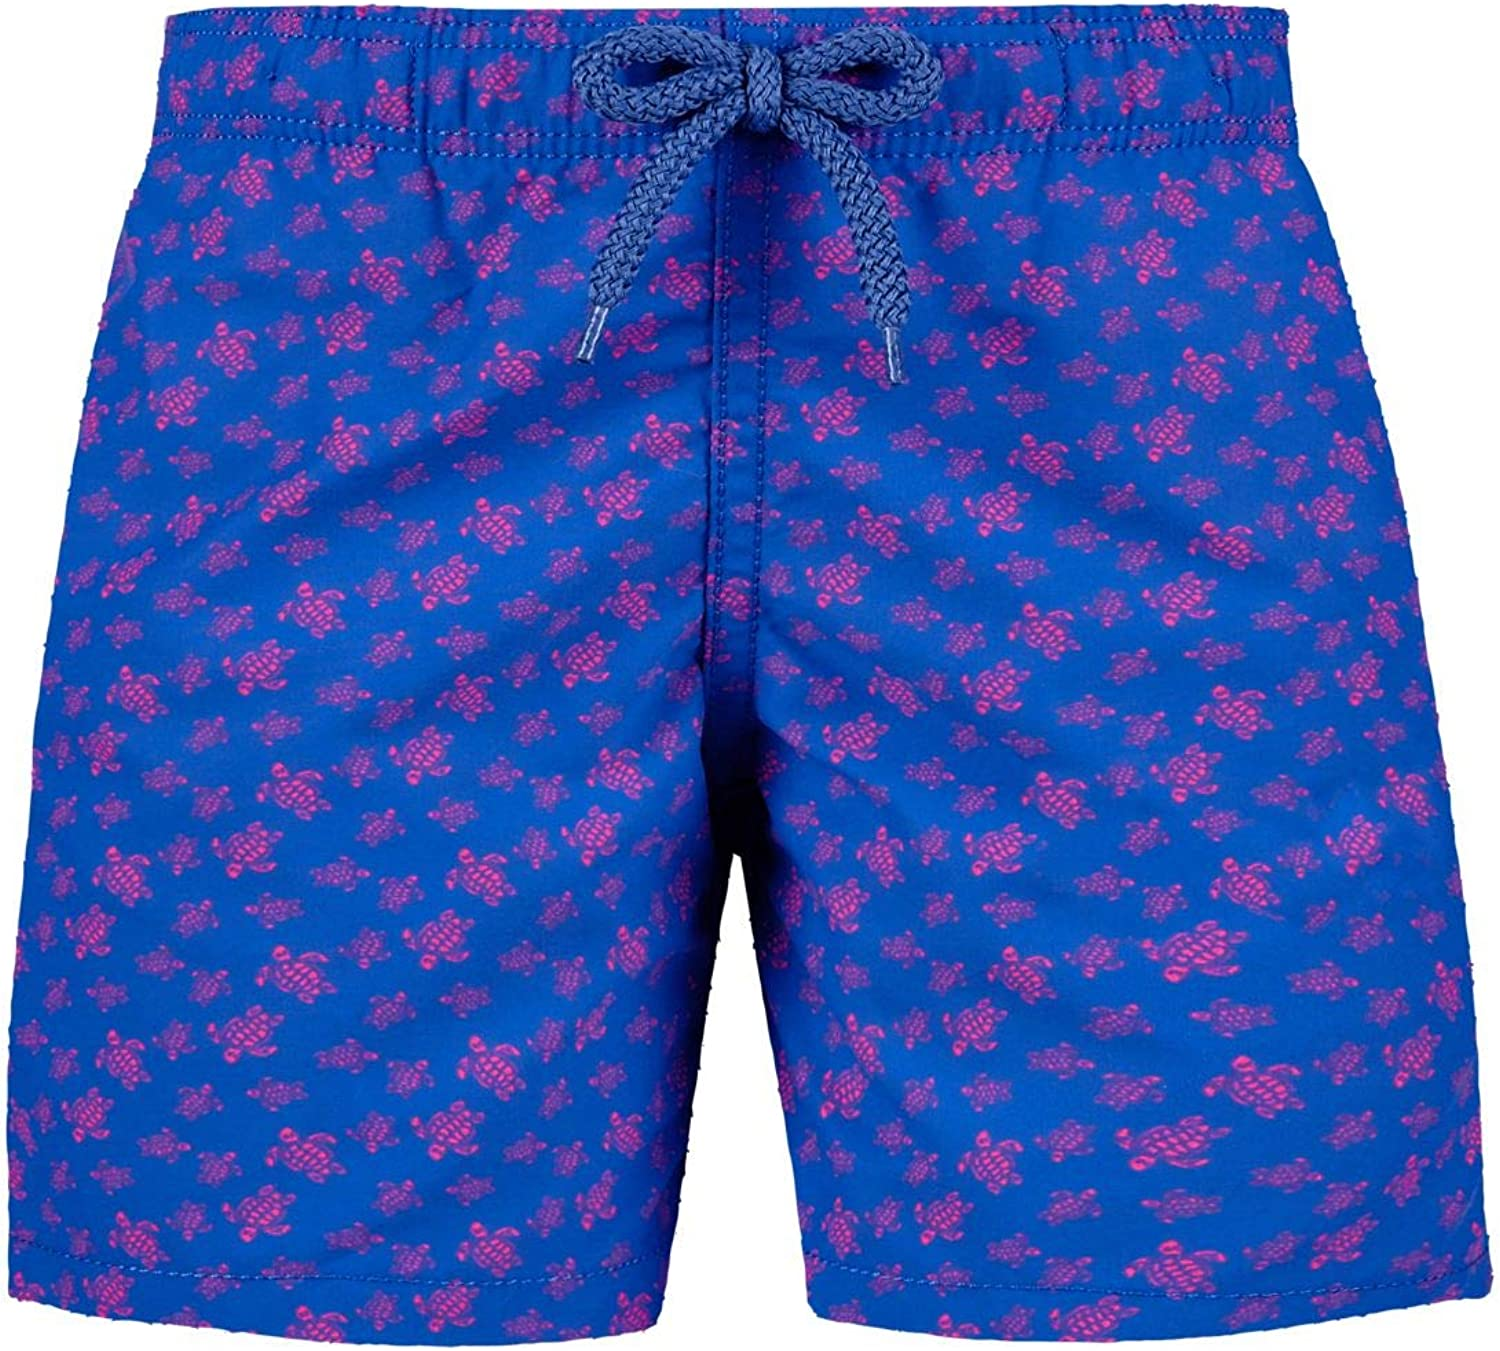 VilebrequinBoys Swimwear Micro Ronde Des Tortues